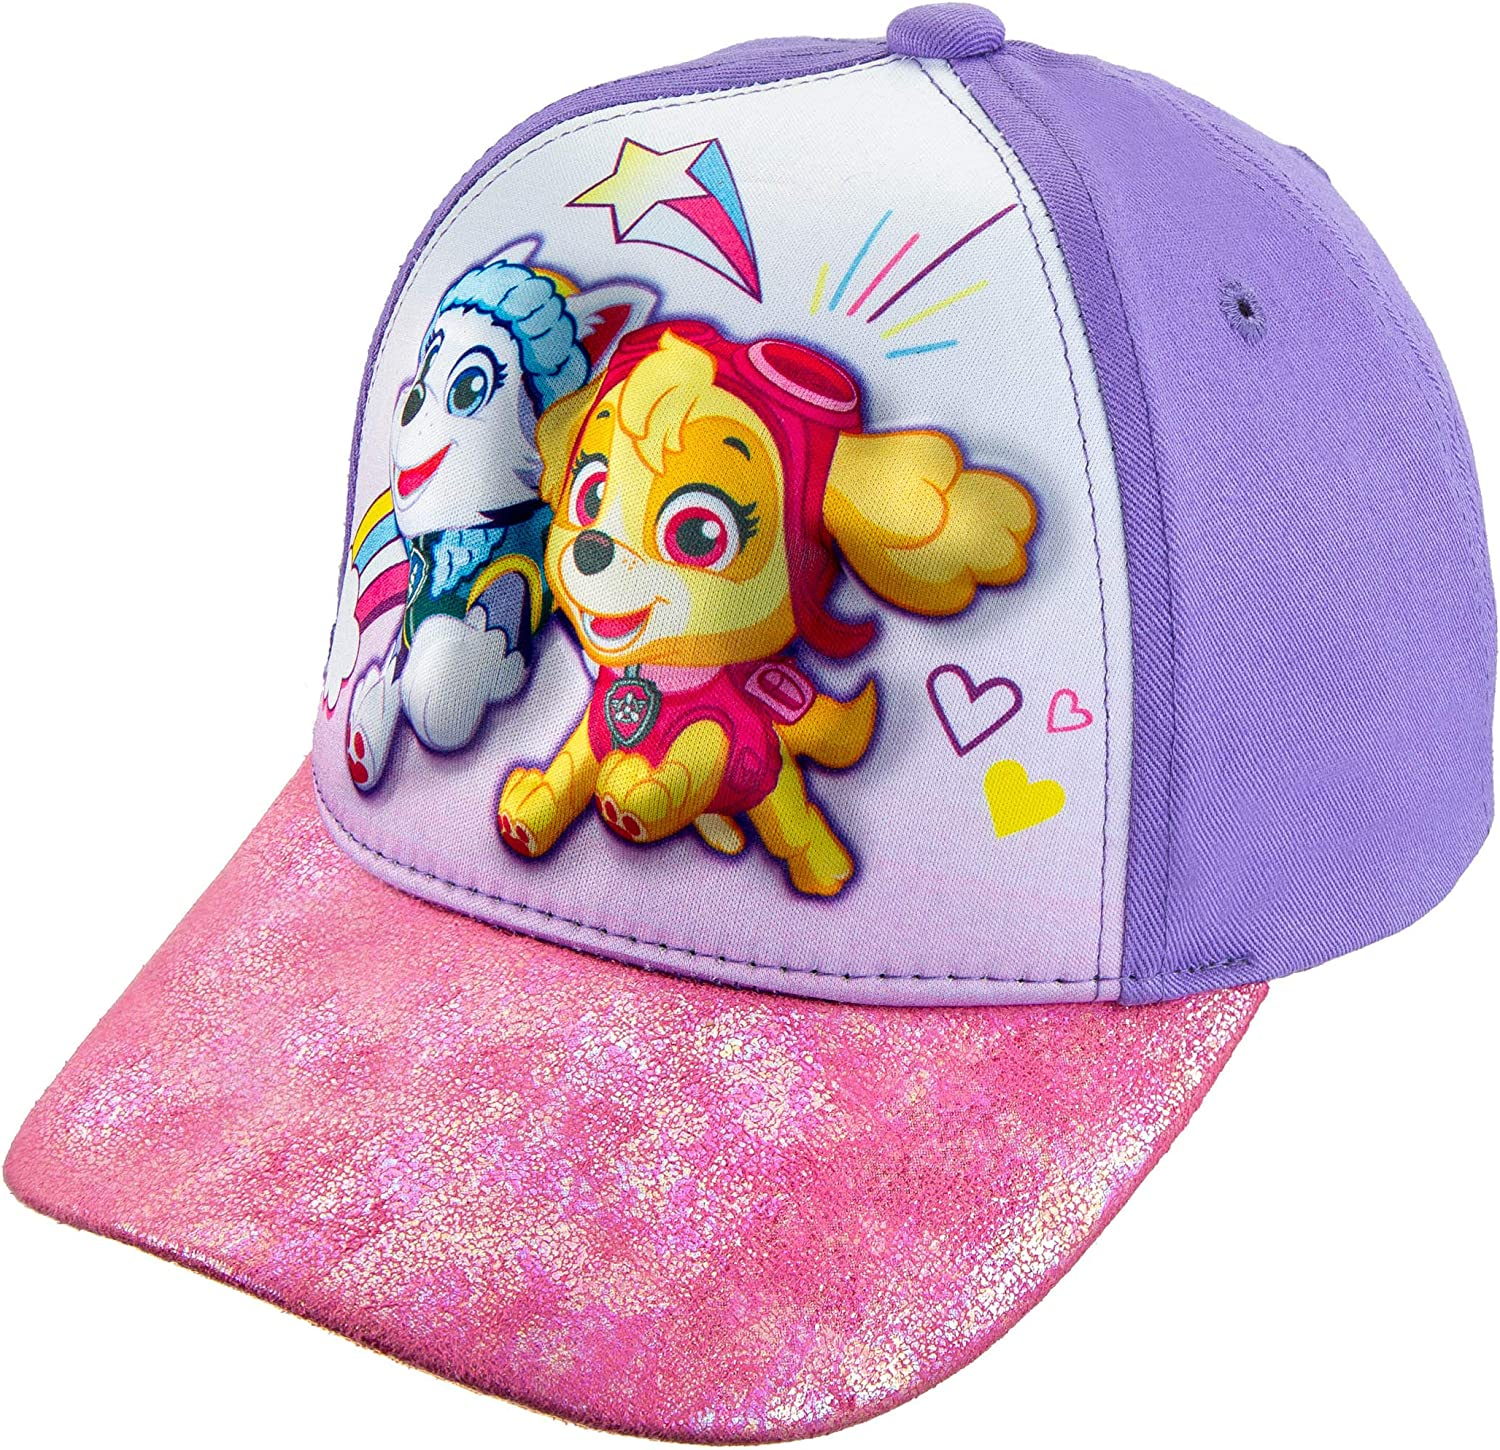 Nickelodeon Now on sale Toddler Safety and trust Girls' Paw Patrol Cotton Baseball Cap 3D Hat